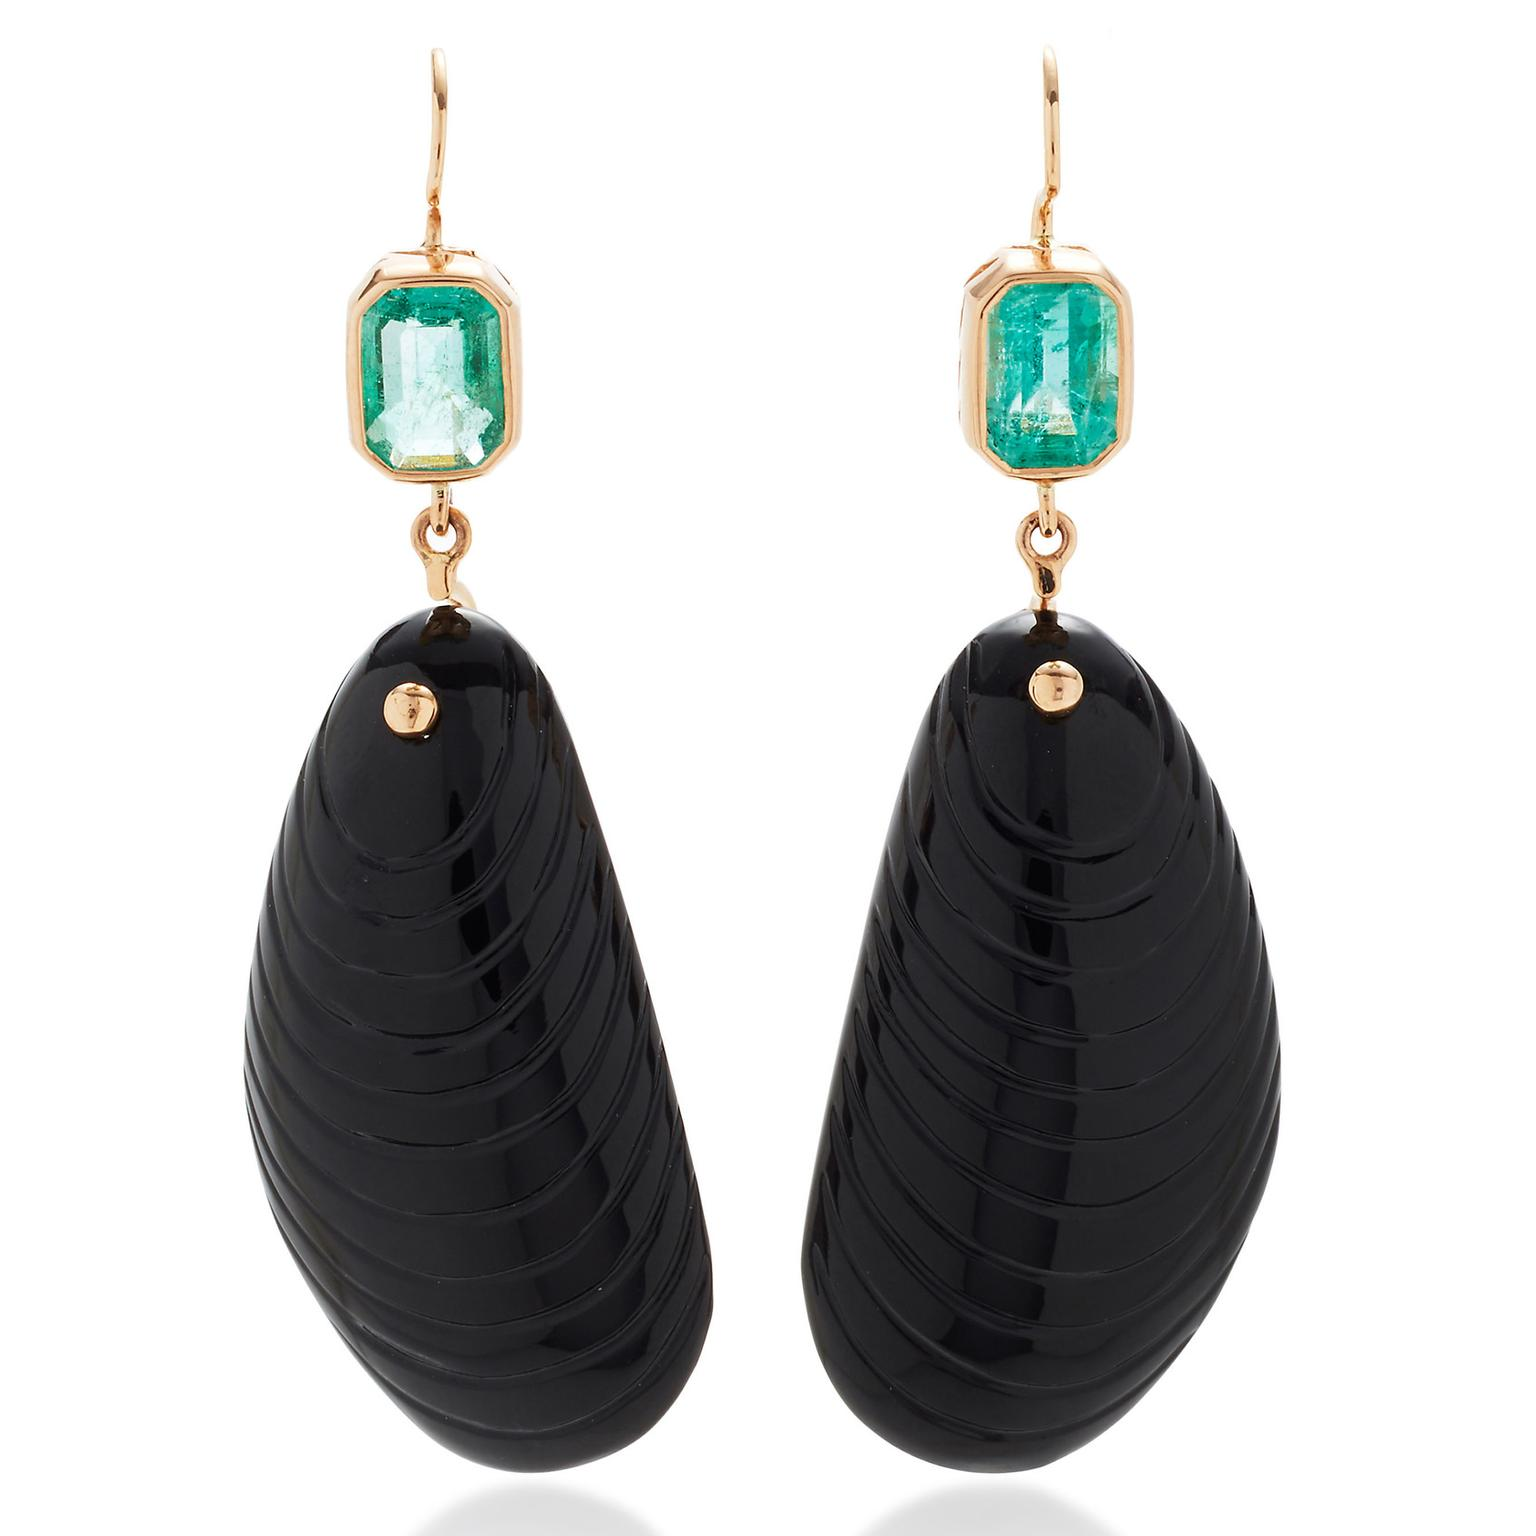 Dezso black onyx shell earrings with emeralds